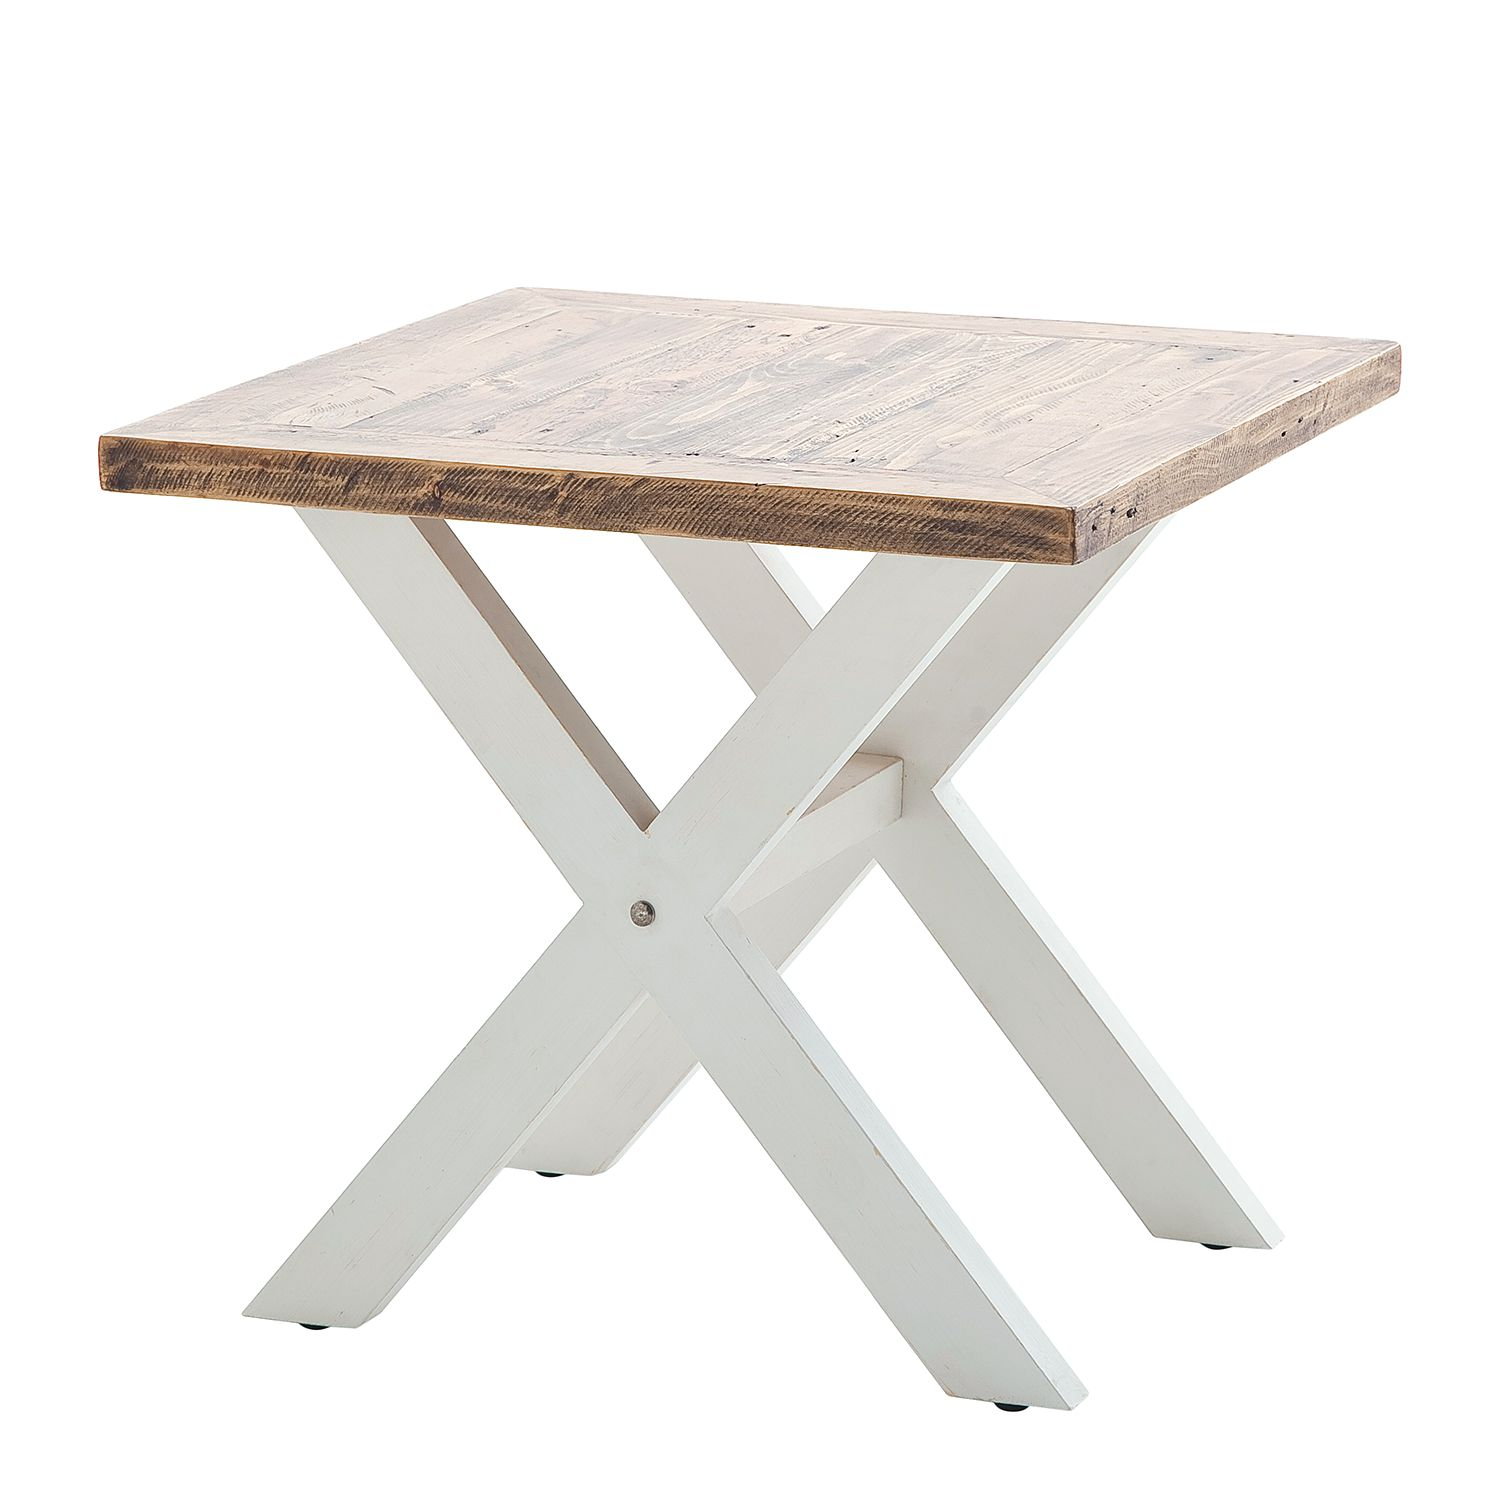 Table d'appoint Balignton - Pin massif - Blanc, Maison Belfort